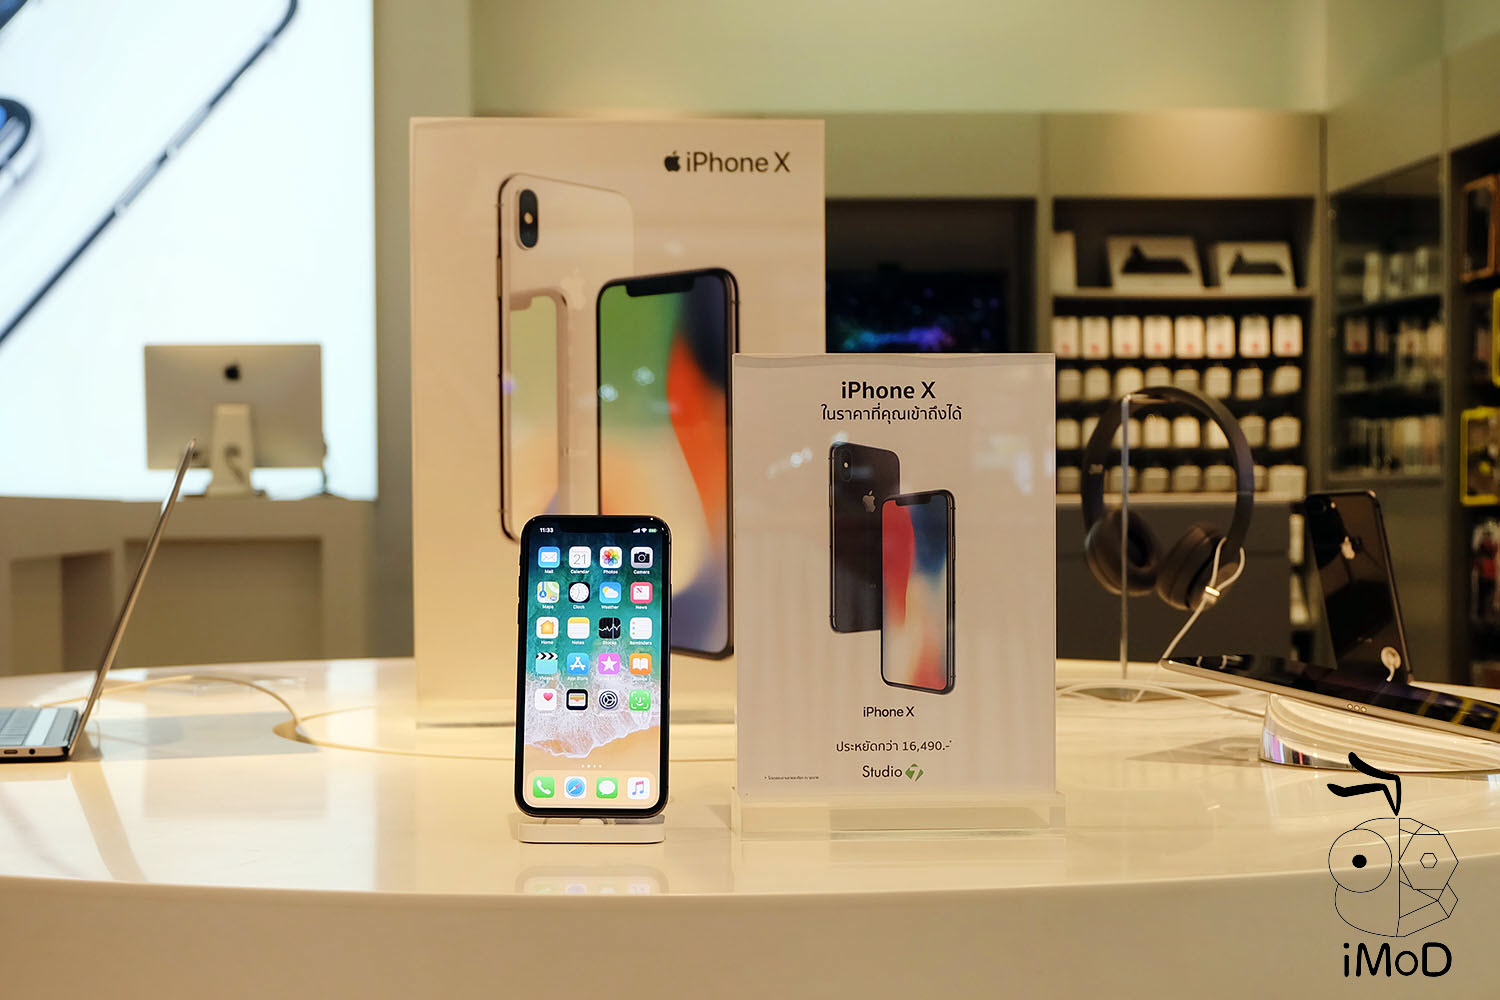 Studio 7 Iphone X Hot Deal 014